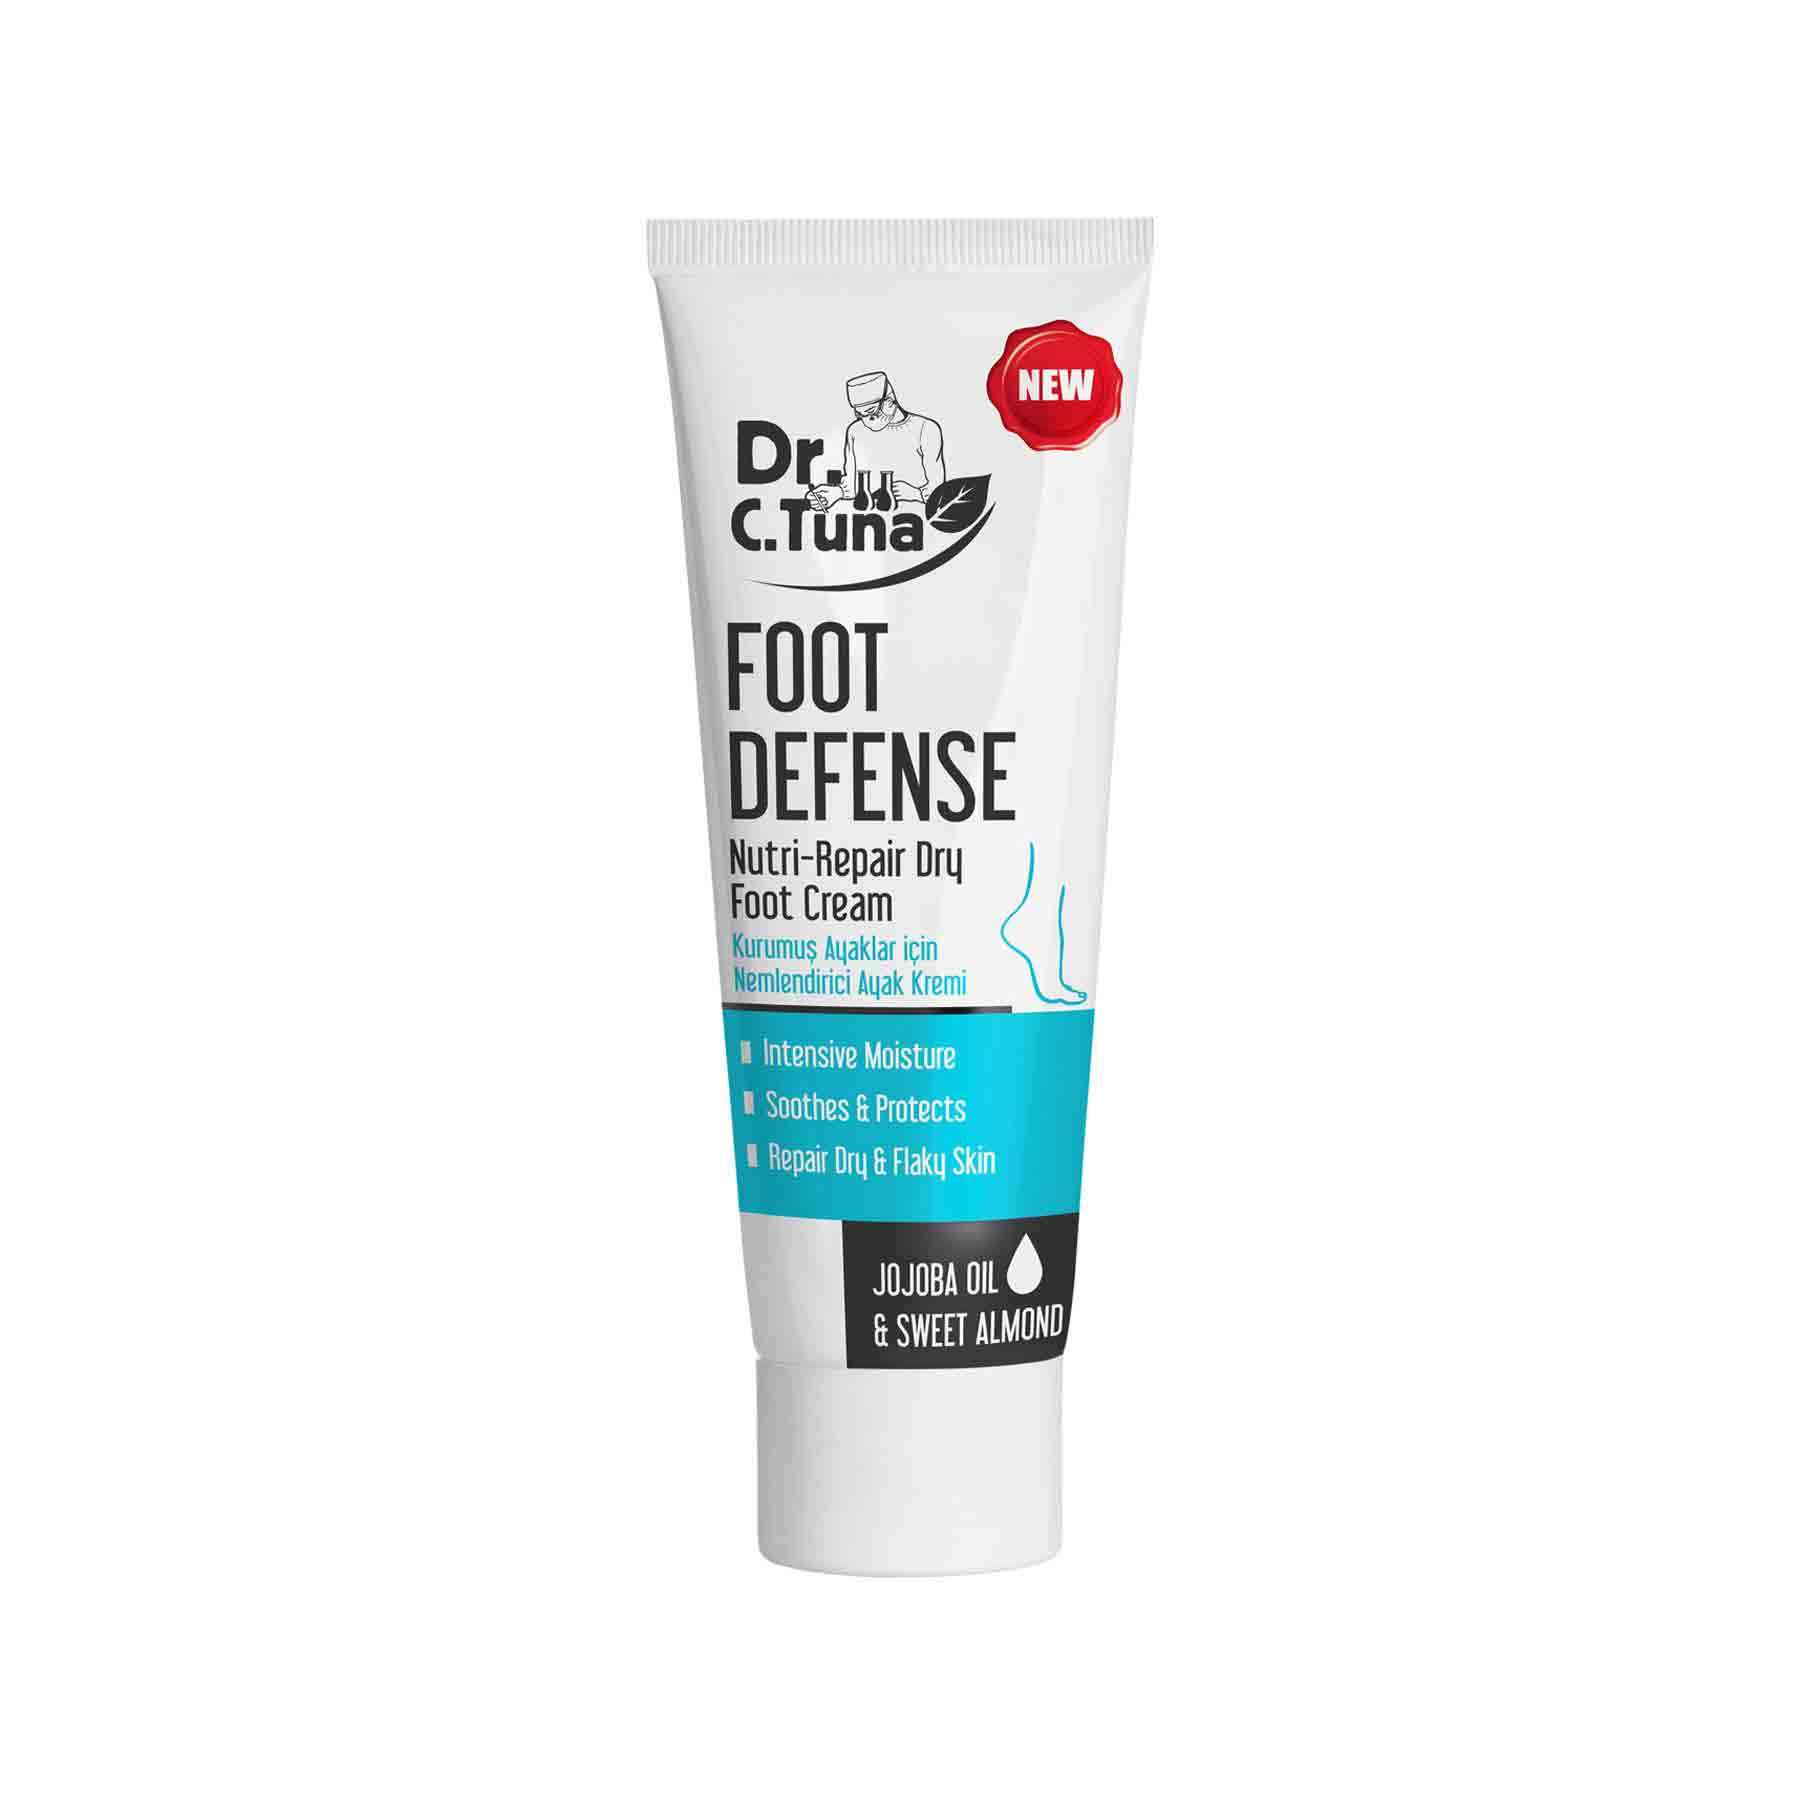 DR C TUNA FOOT DEFENSE NUTRI REPAIR DRY FOOT CREAM 100 ML